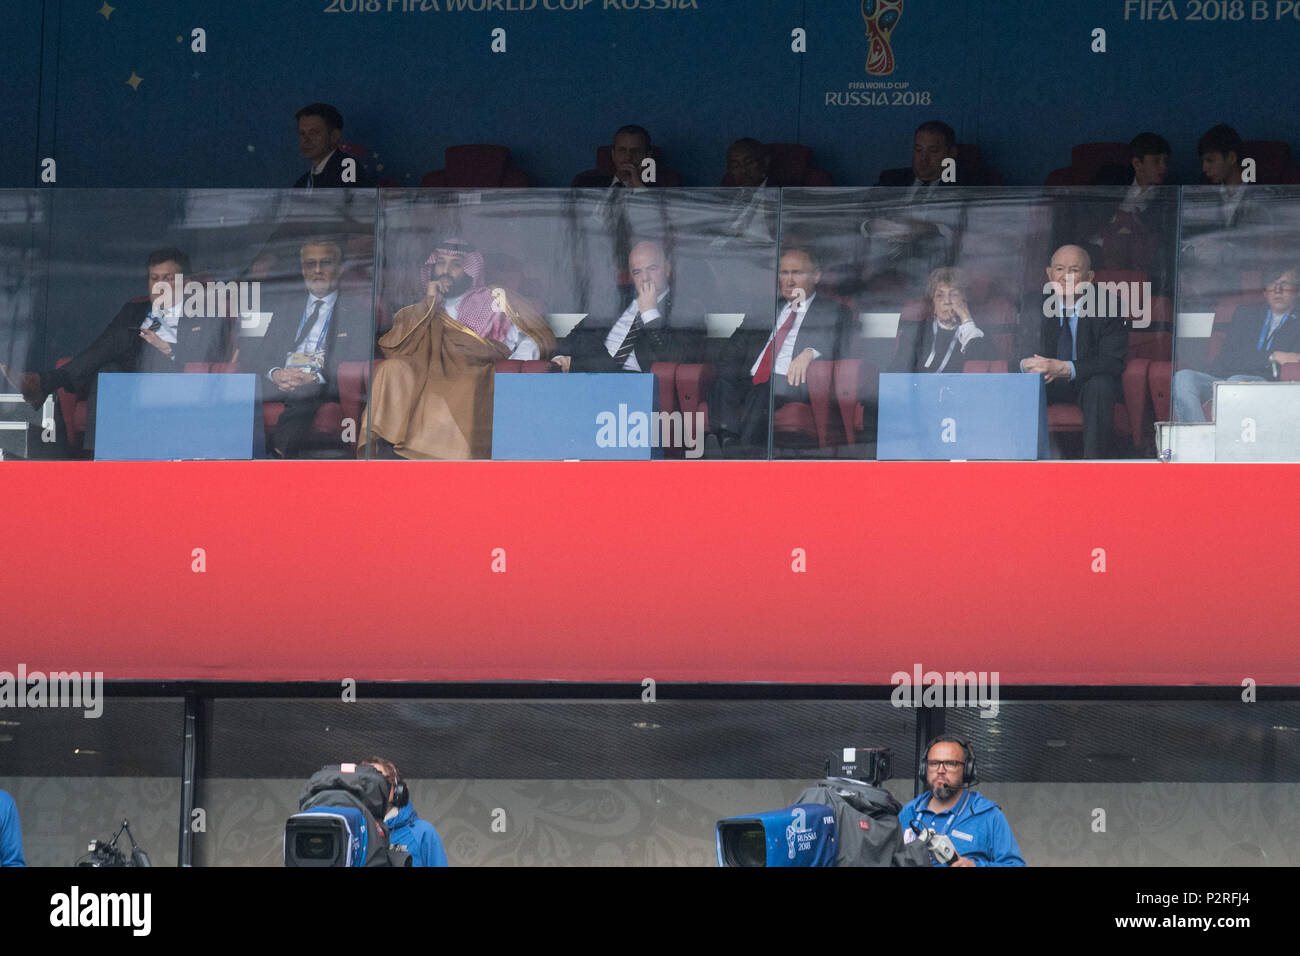 Moscow, Russland. 14th June, 2018. Gianni INFANTINO (left, president, FIFA) and Vladimir Vladimirovich PUTIN (with right, president of Russia) watch the match, spectators, Russia (RUS) - Saudi Arabia (KSA) 5: 0, preliminary round, Group A, Game 1, on 14.06.2018 in Moscow; Football World Cup 2018 in Russia from 14.06. - 15.07.2018. | usage worldwide Credit: dpa/Alamy Live News - Stock Image